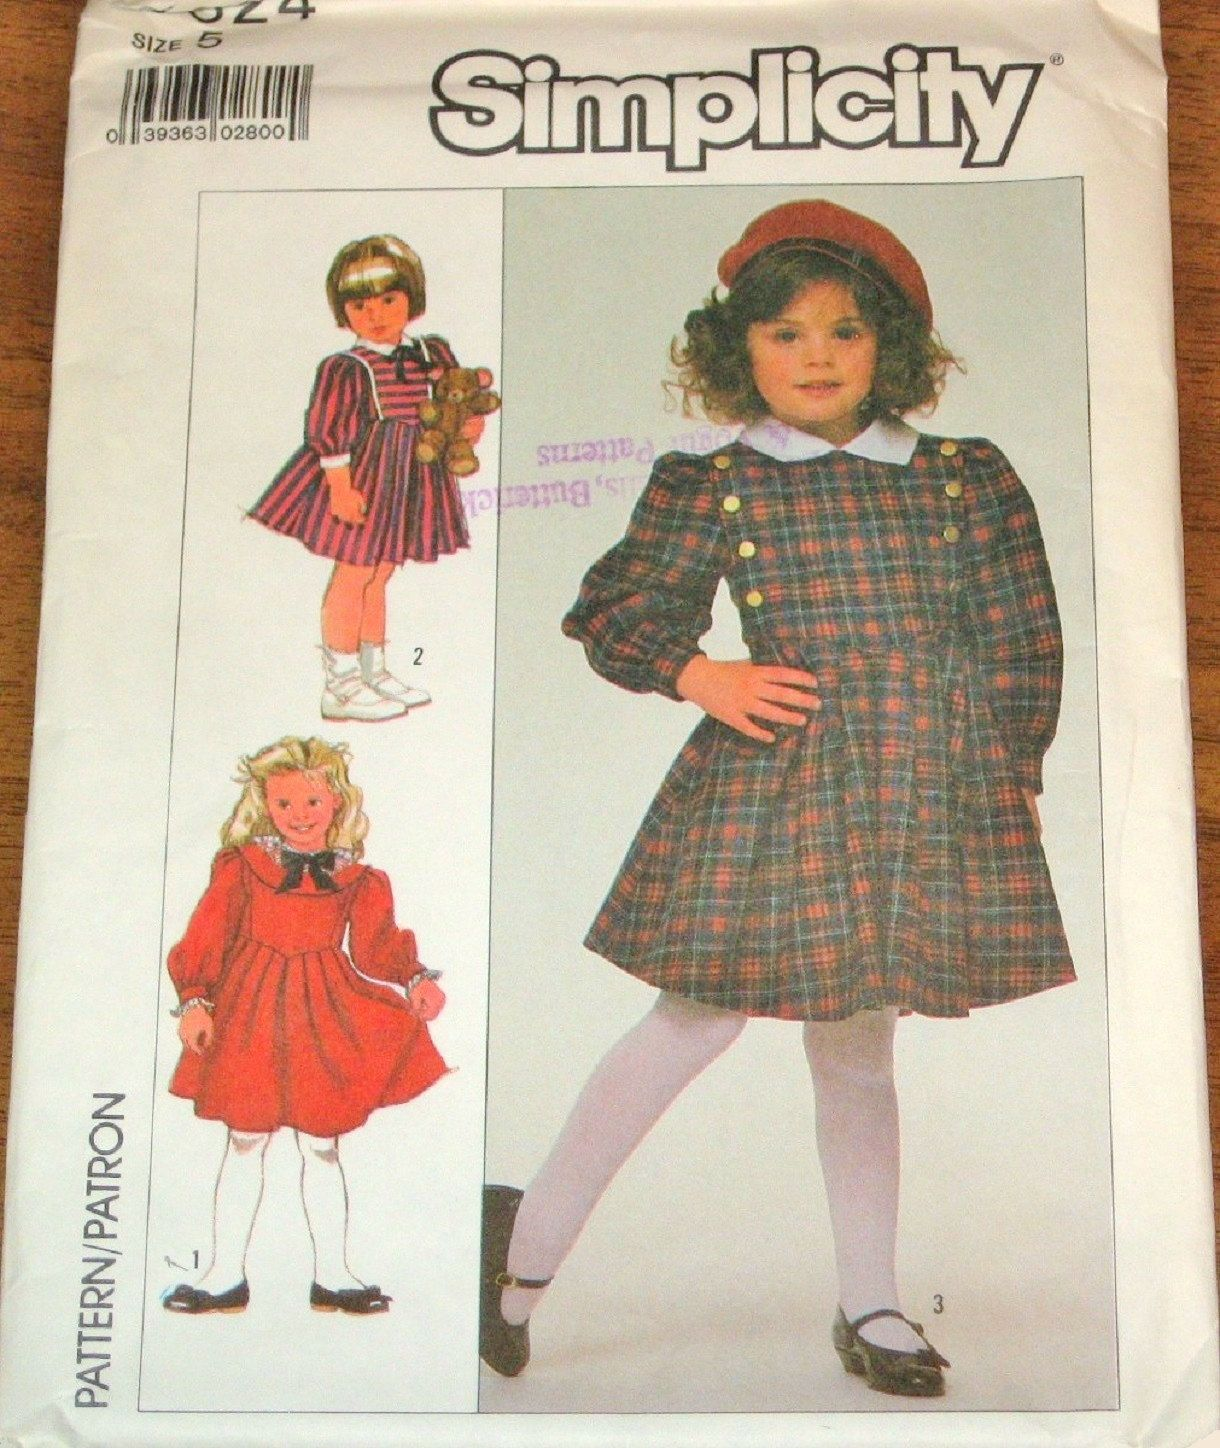 Vintage 1980s Simplicity Sewing Pattern 8324. Girls Nautical Dress ...